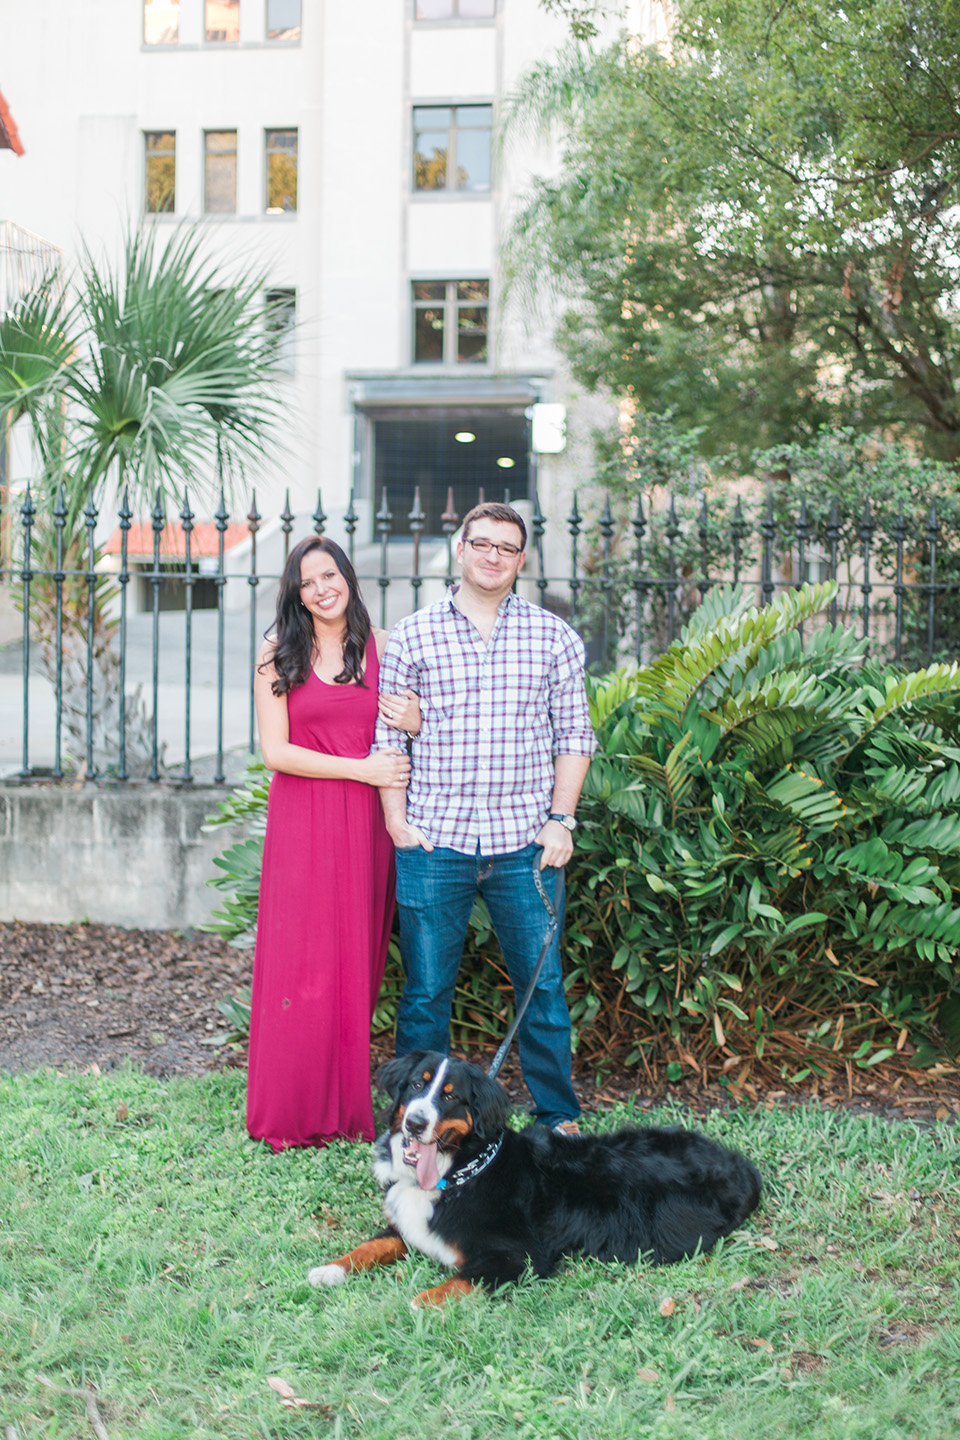 Image of an engaged couple standing together, linking arms, with their Bernese Mountain Dog downtown Orlando, Florida.  They are standing on grass in front of a black iron gate.